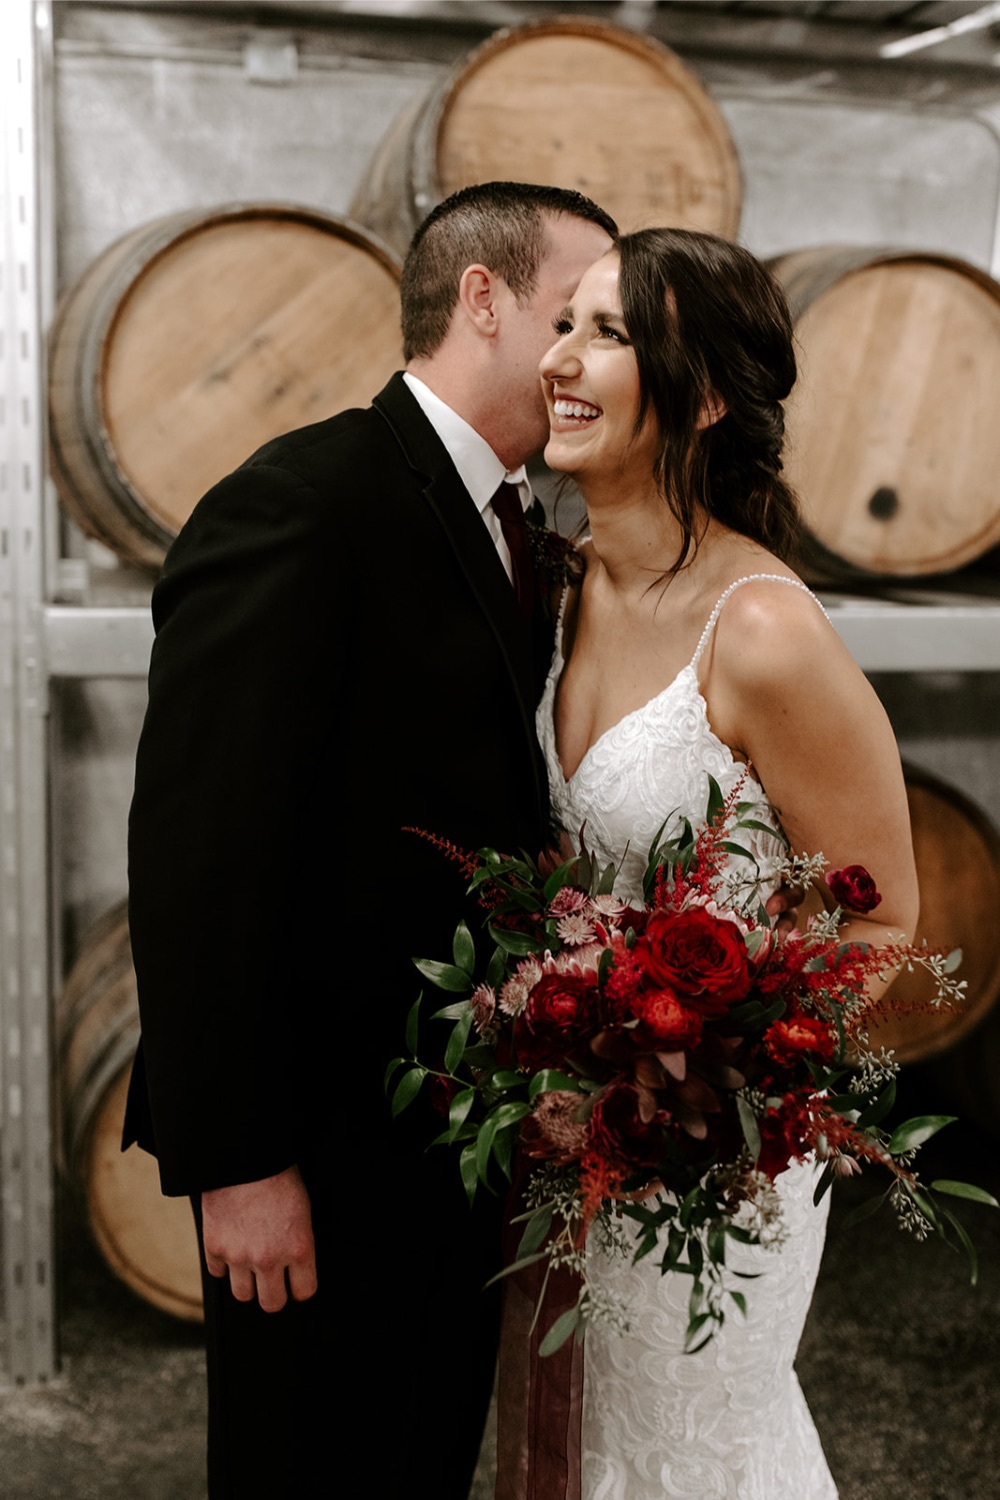 Ryan+DevynWedding-101_websize.jpg